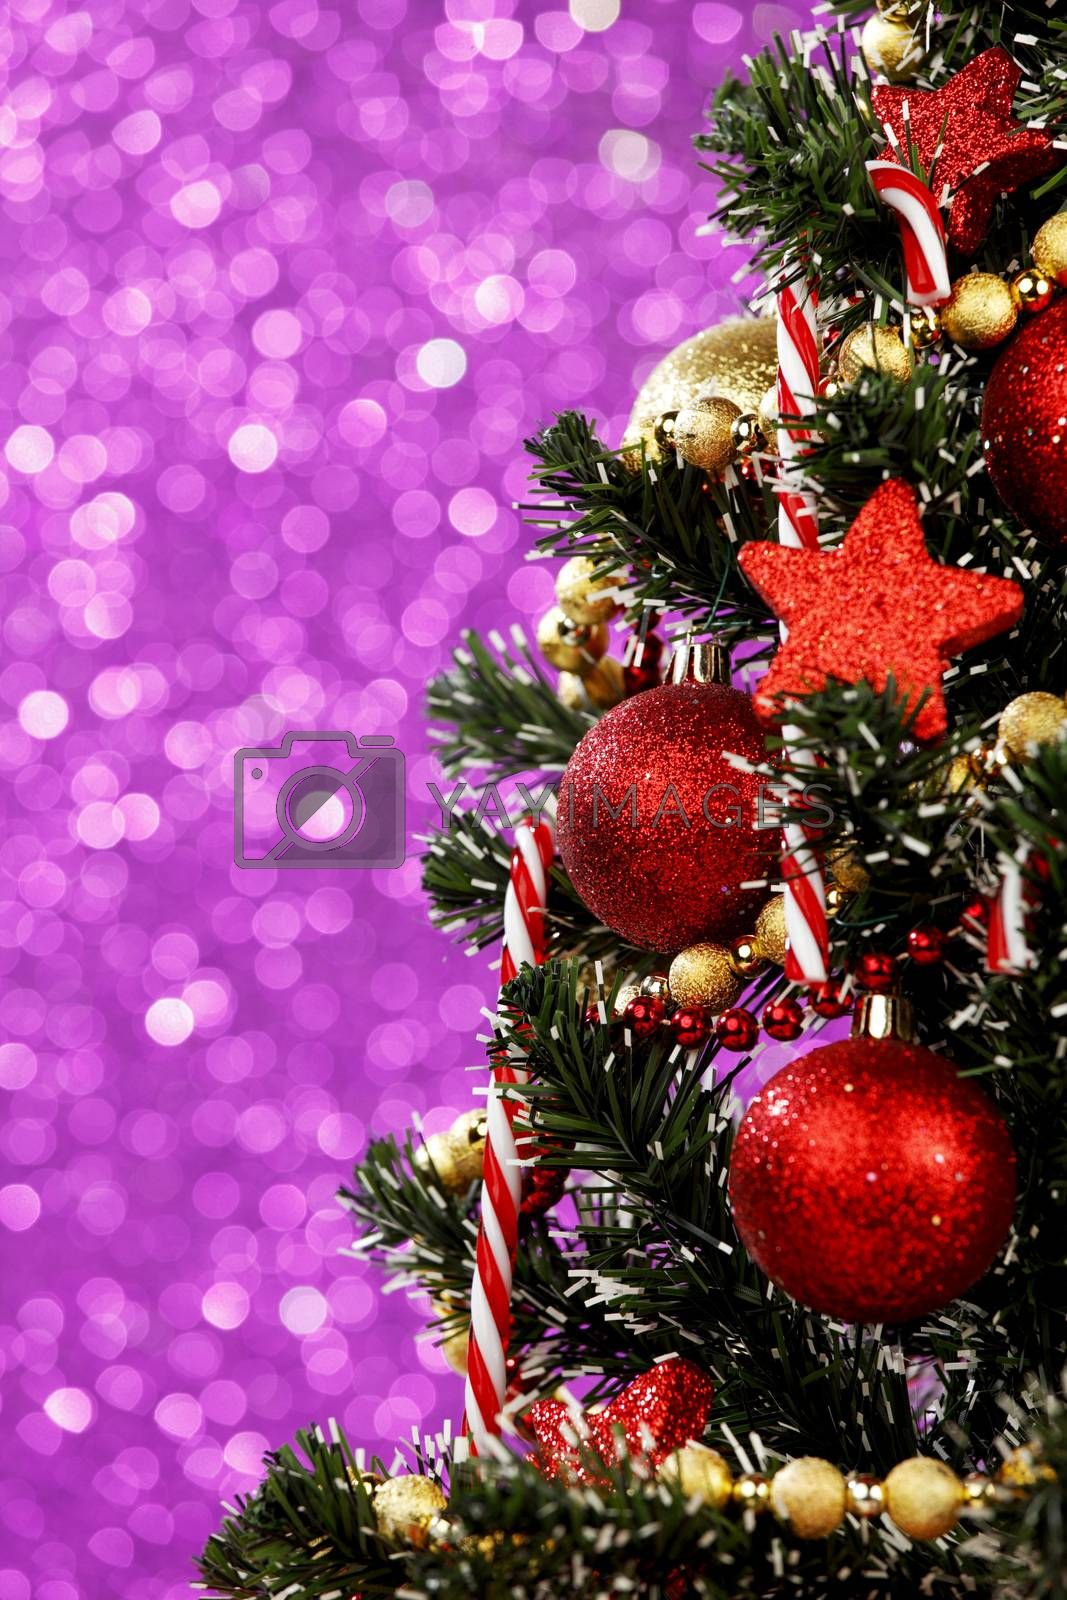 Royalty free image of Christmas tree by Yellowj